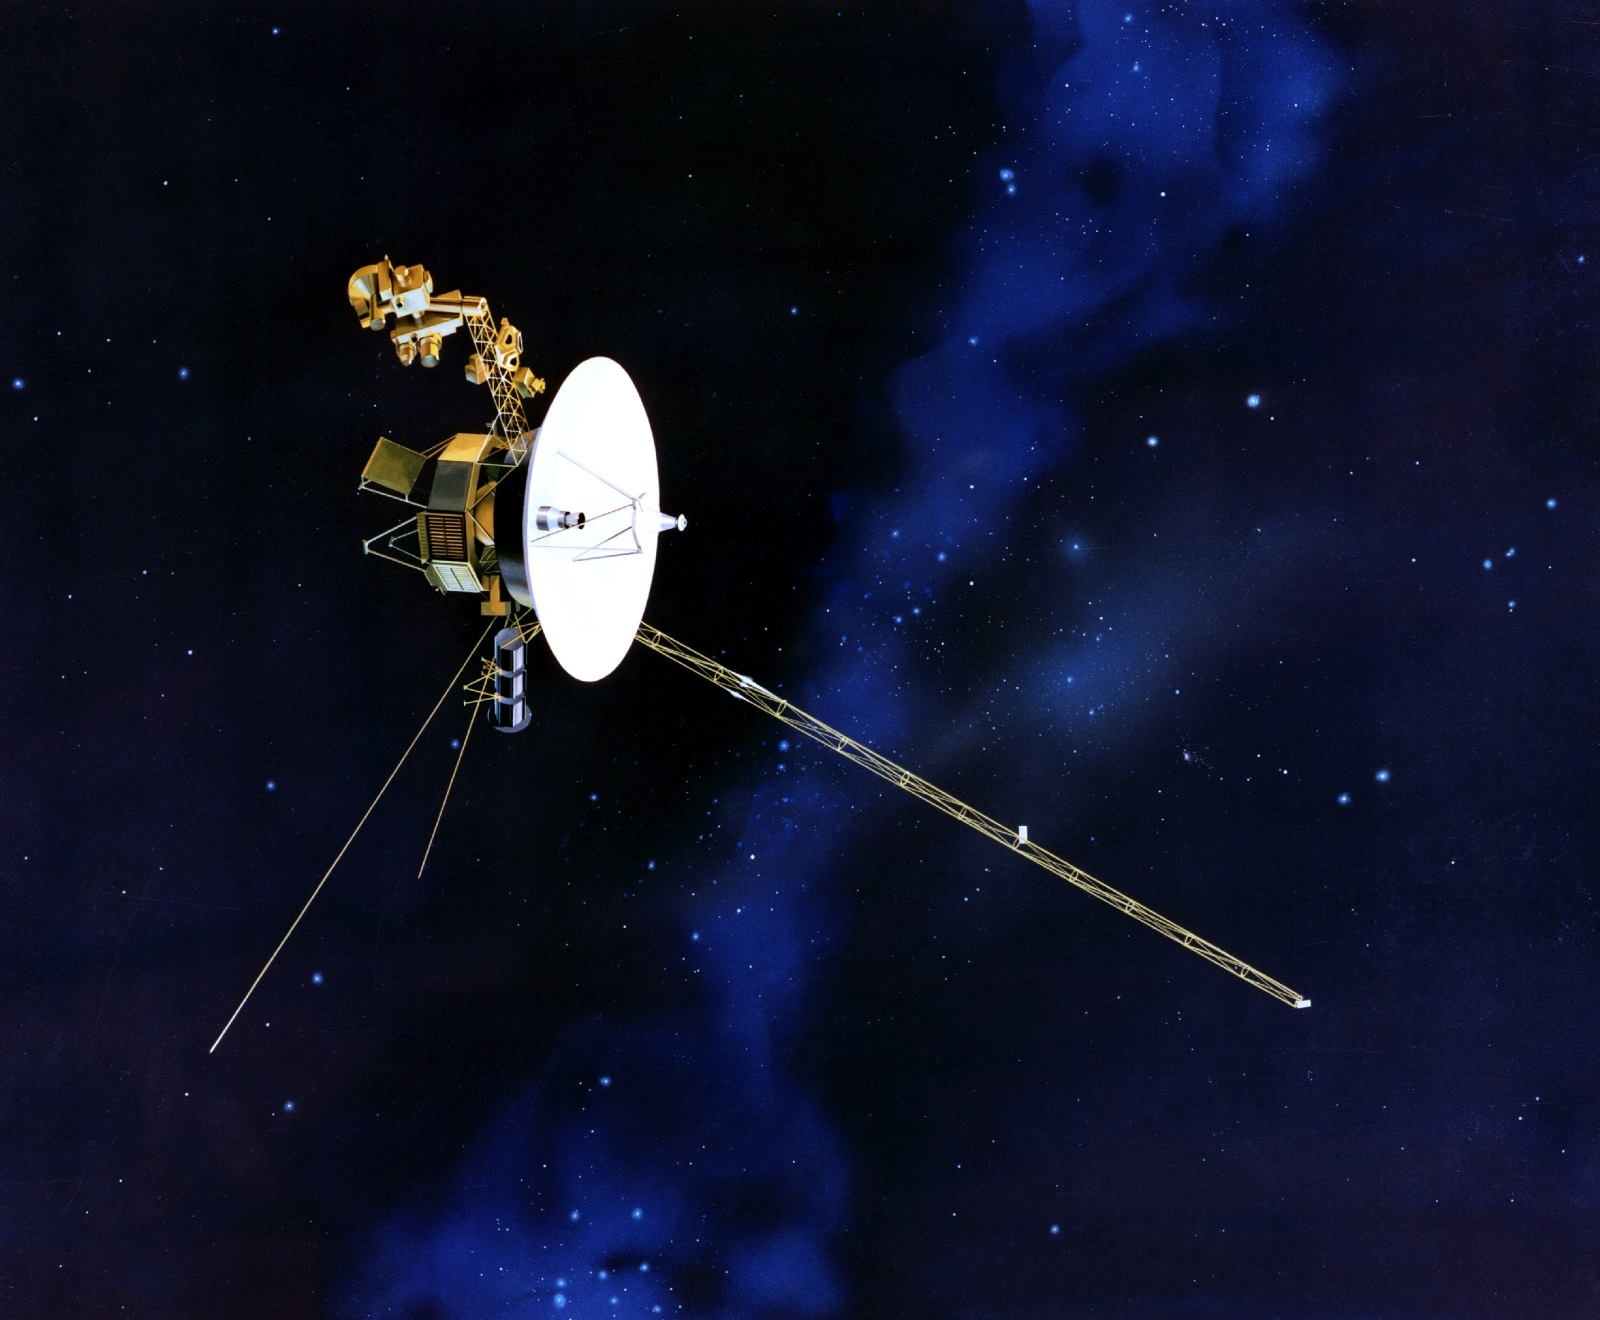 Our Spaceflight Heritage: 40 years after launch, NASA's twin Voyager spacecraft continue to return valuable data